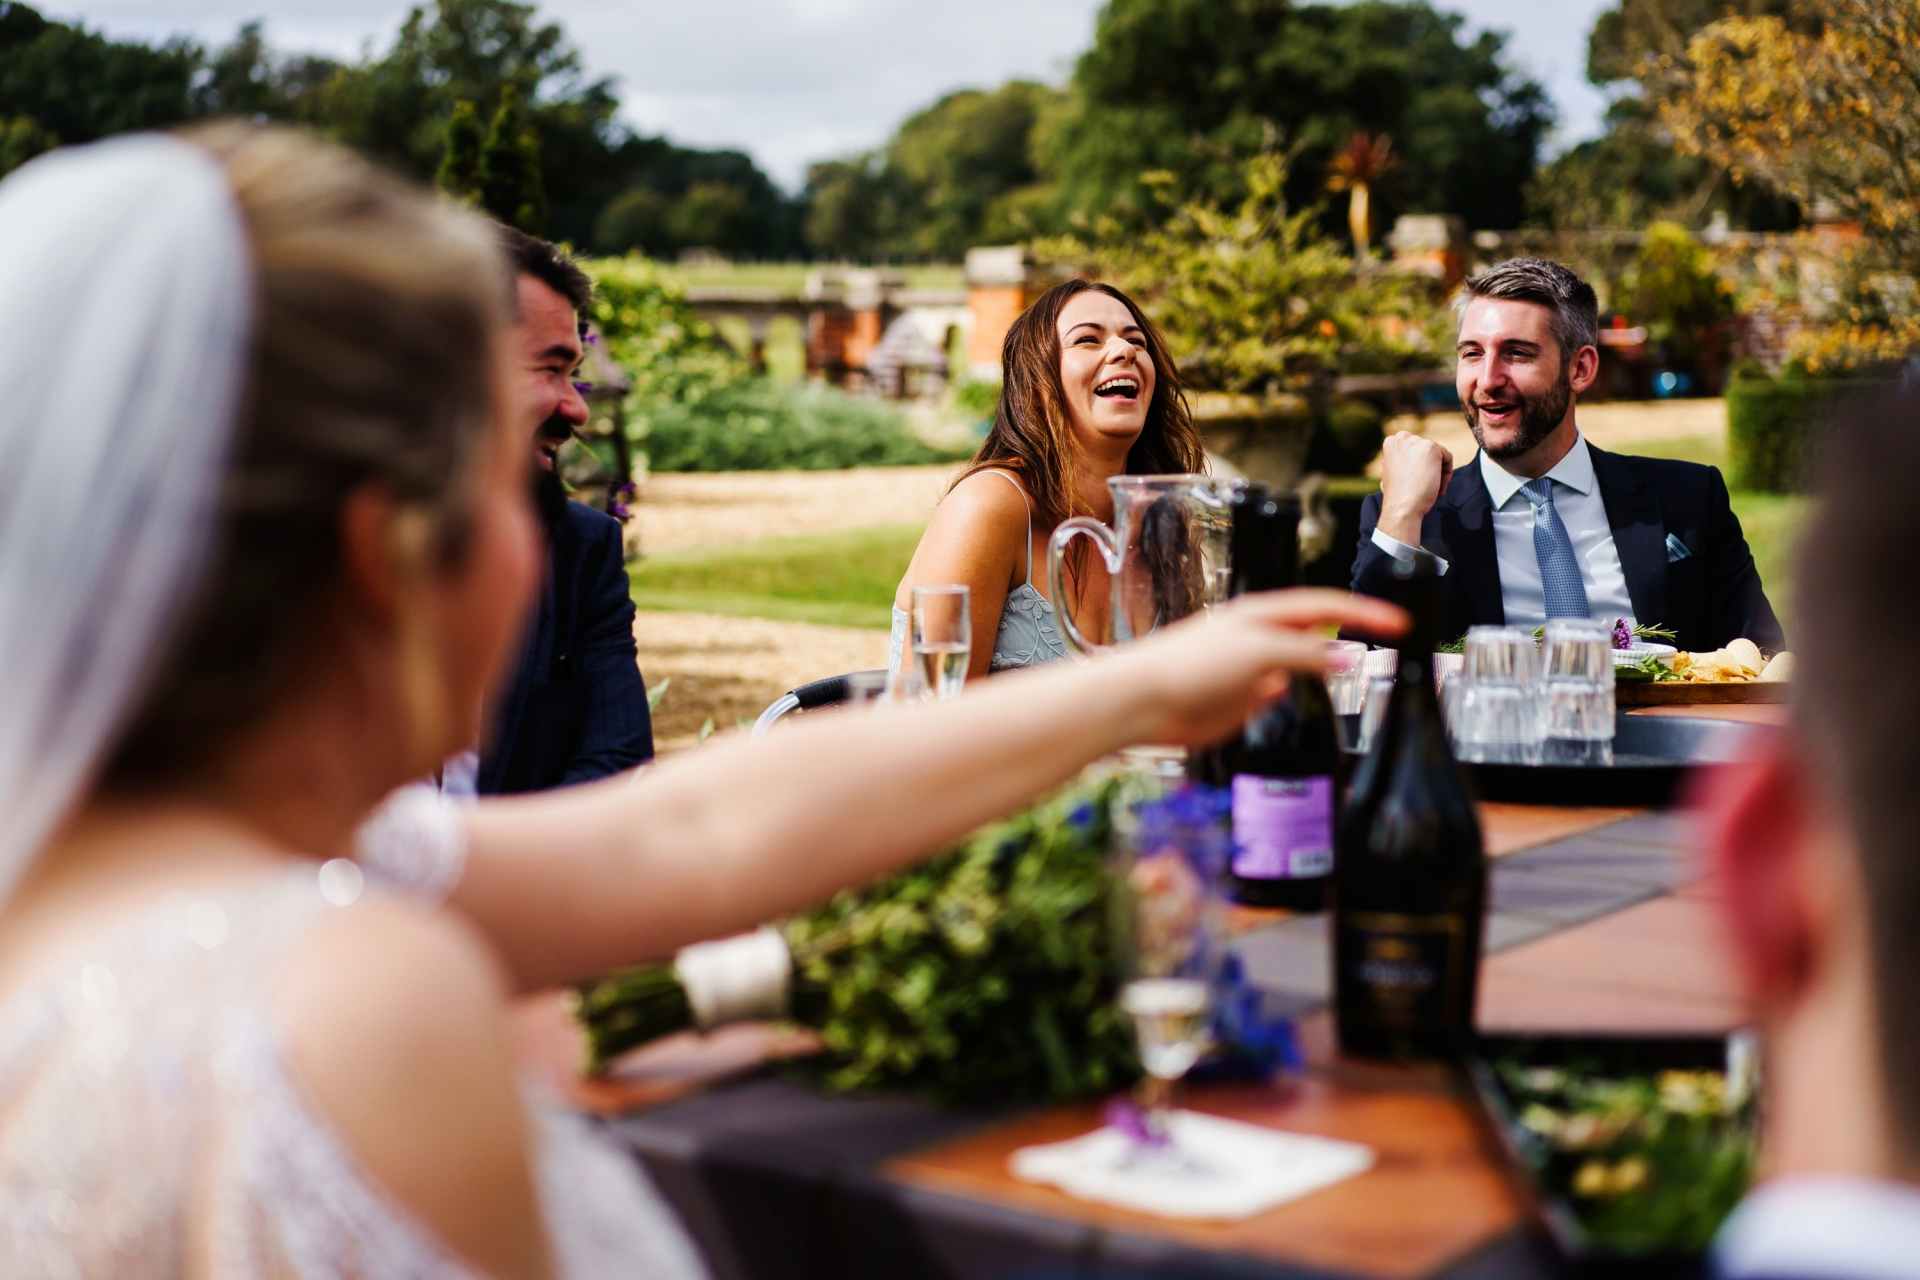 North Norfolk Wedding Photographer | The bride and groom enjoy a joyful al fresco wedding breakfast